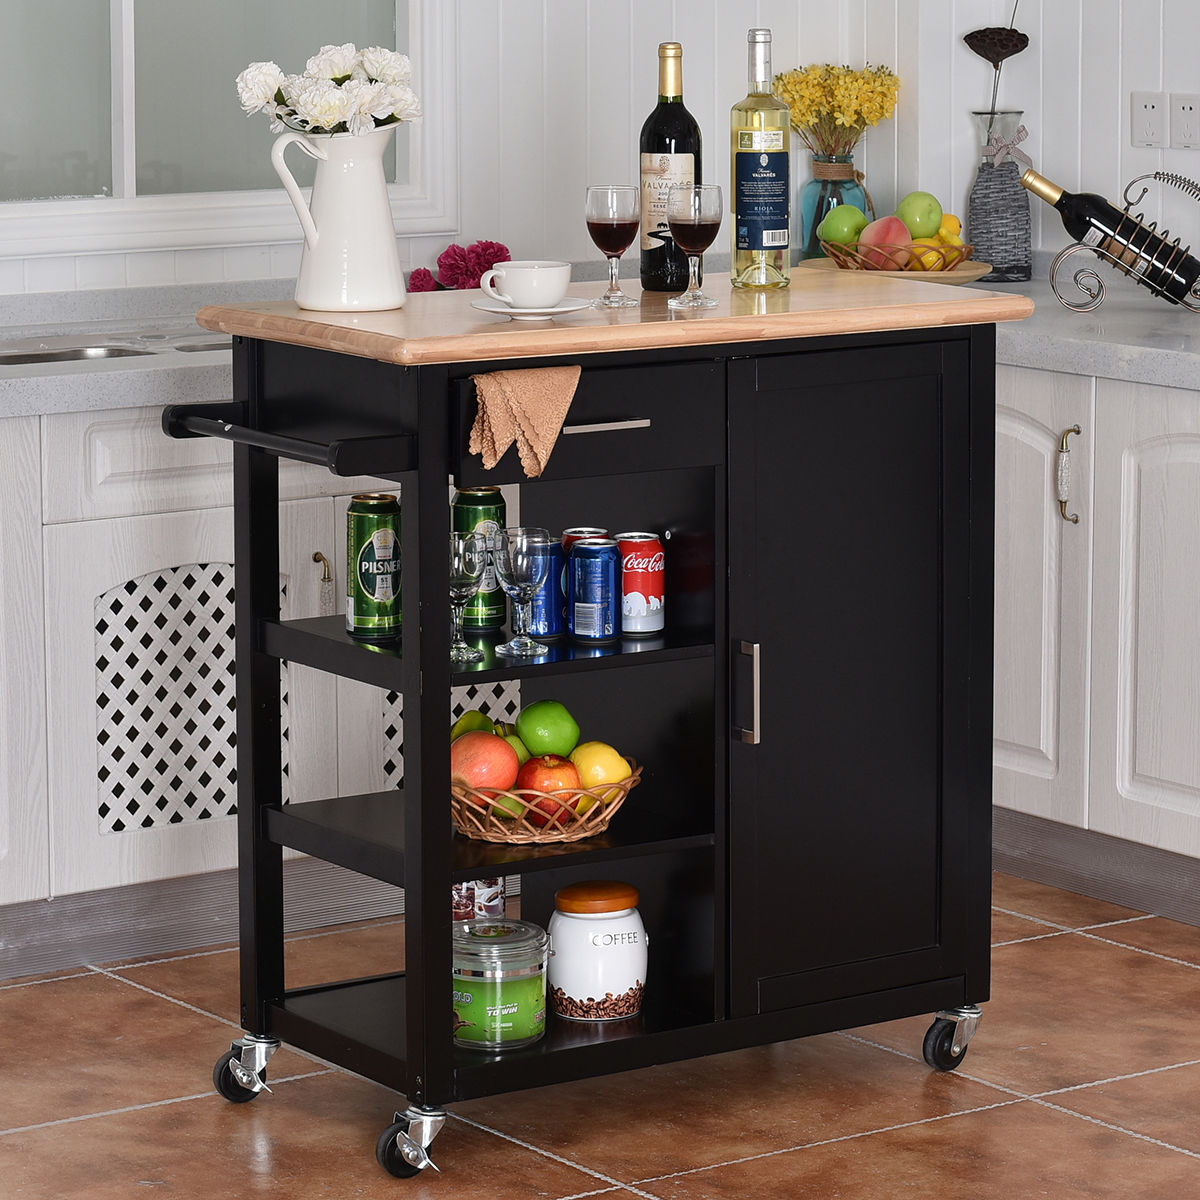 Rolling Kitchen Island kitchen islands & carts - walmart